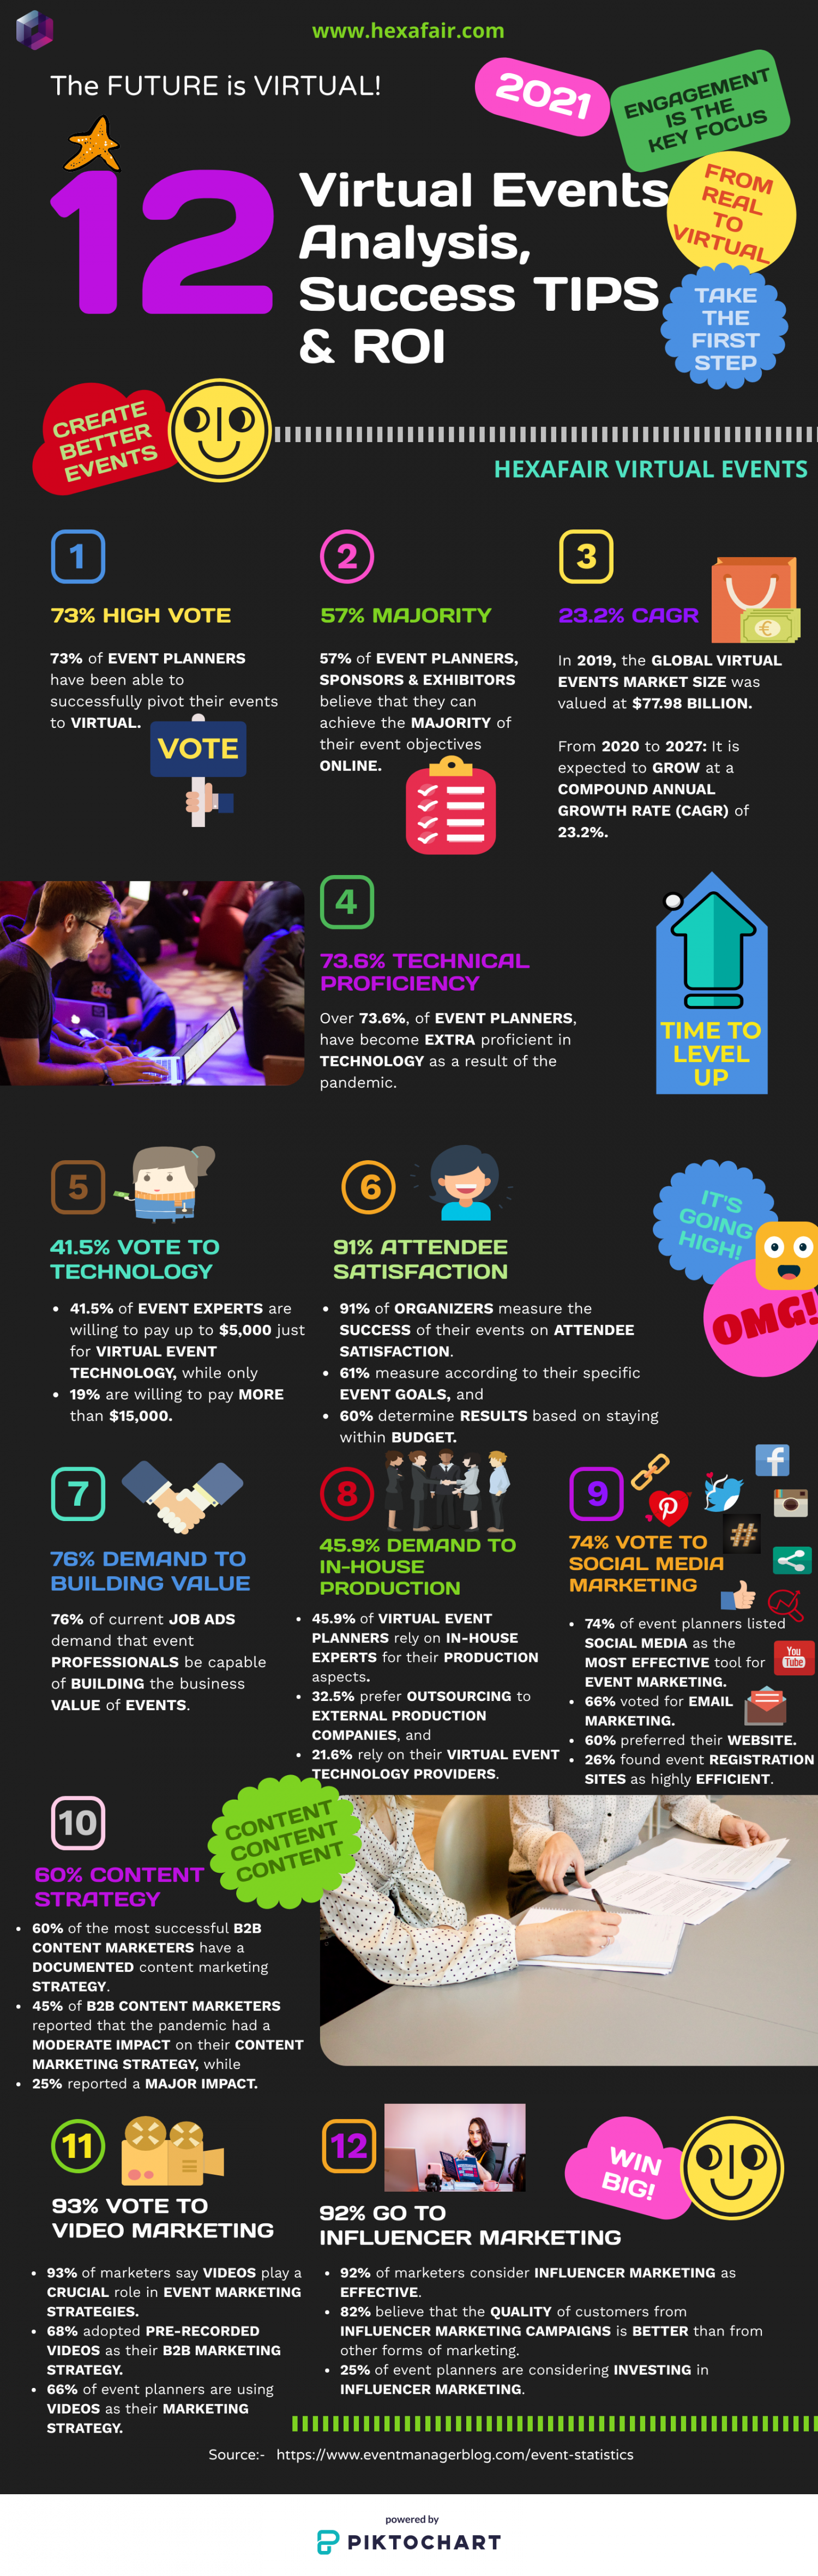 12 Virtual Events Analysis, Success Tips & ROI Infographic